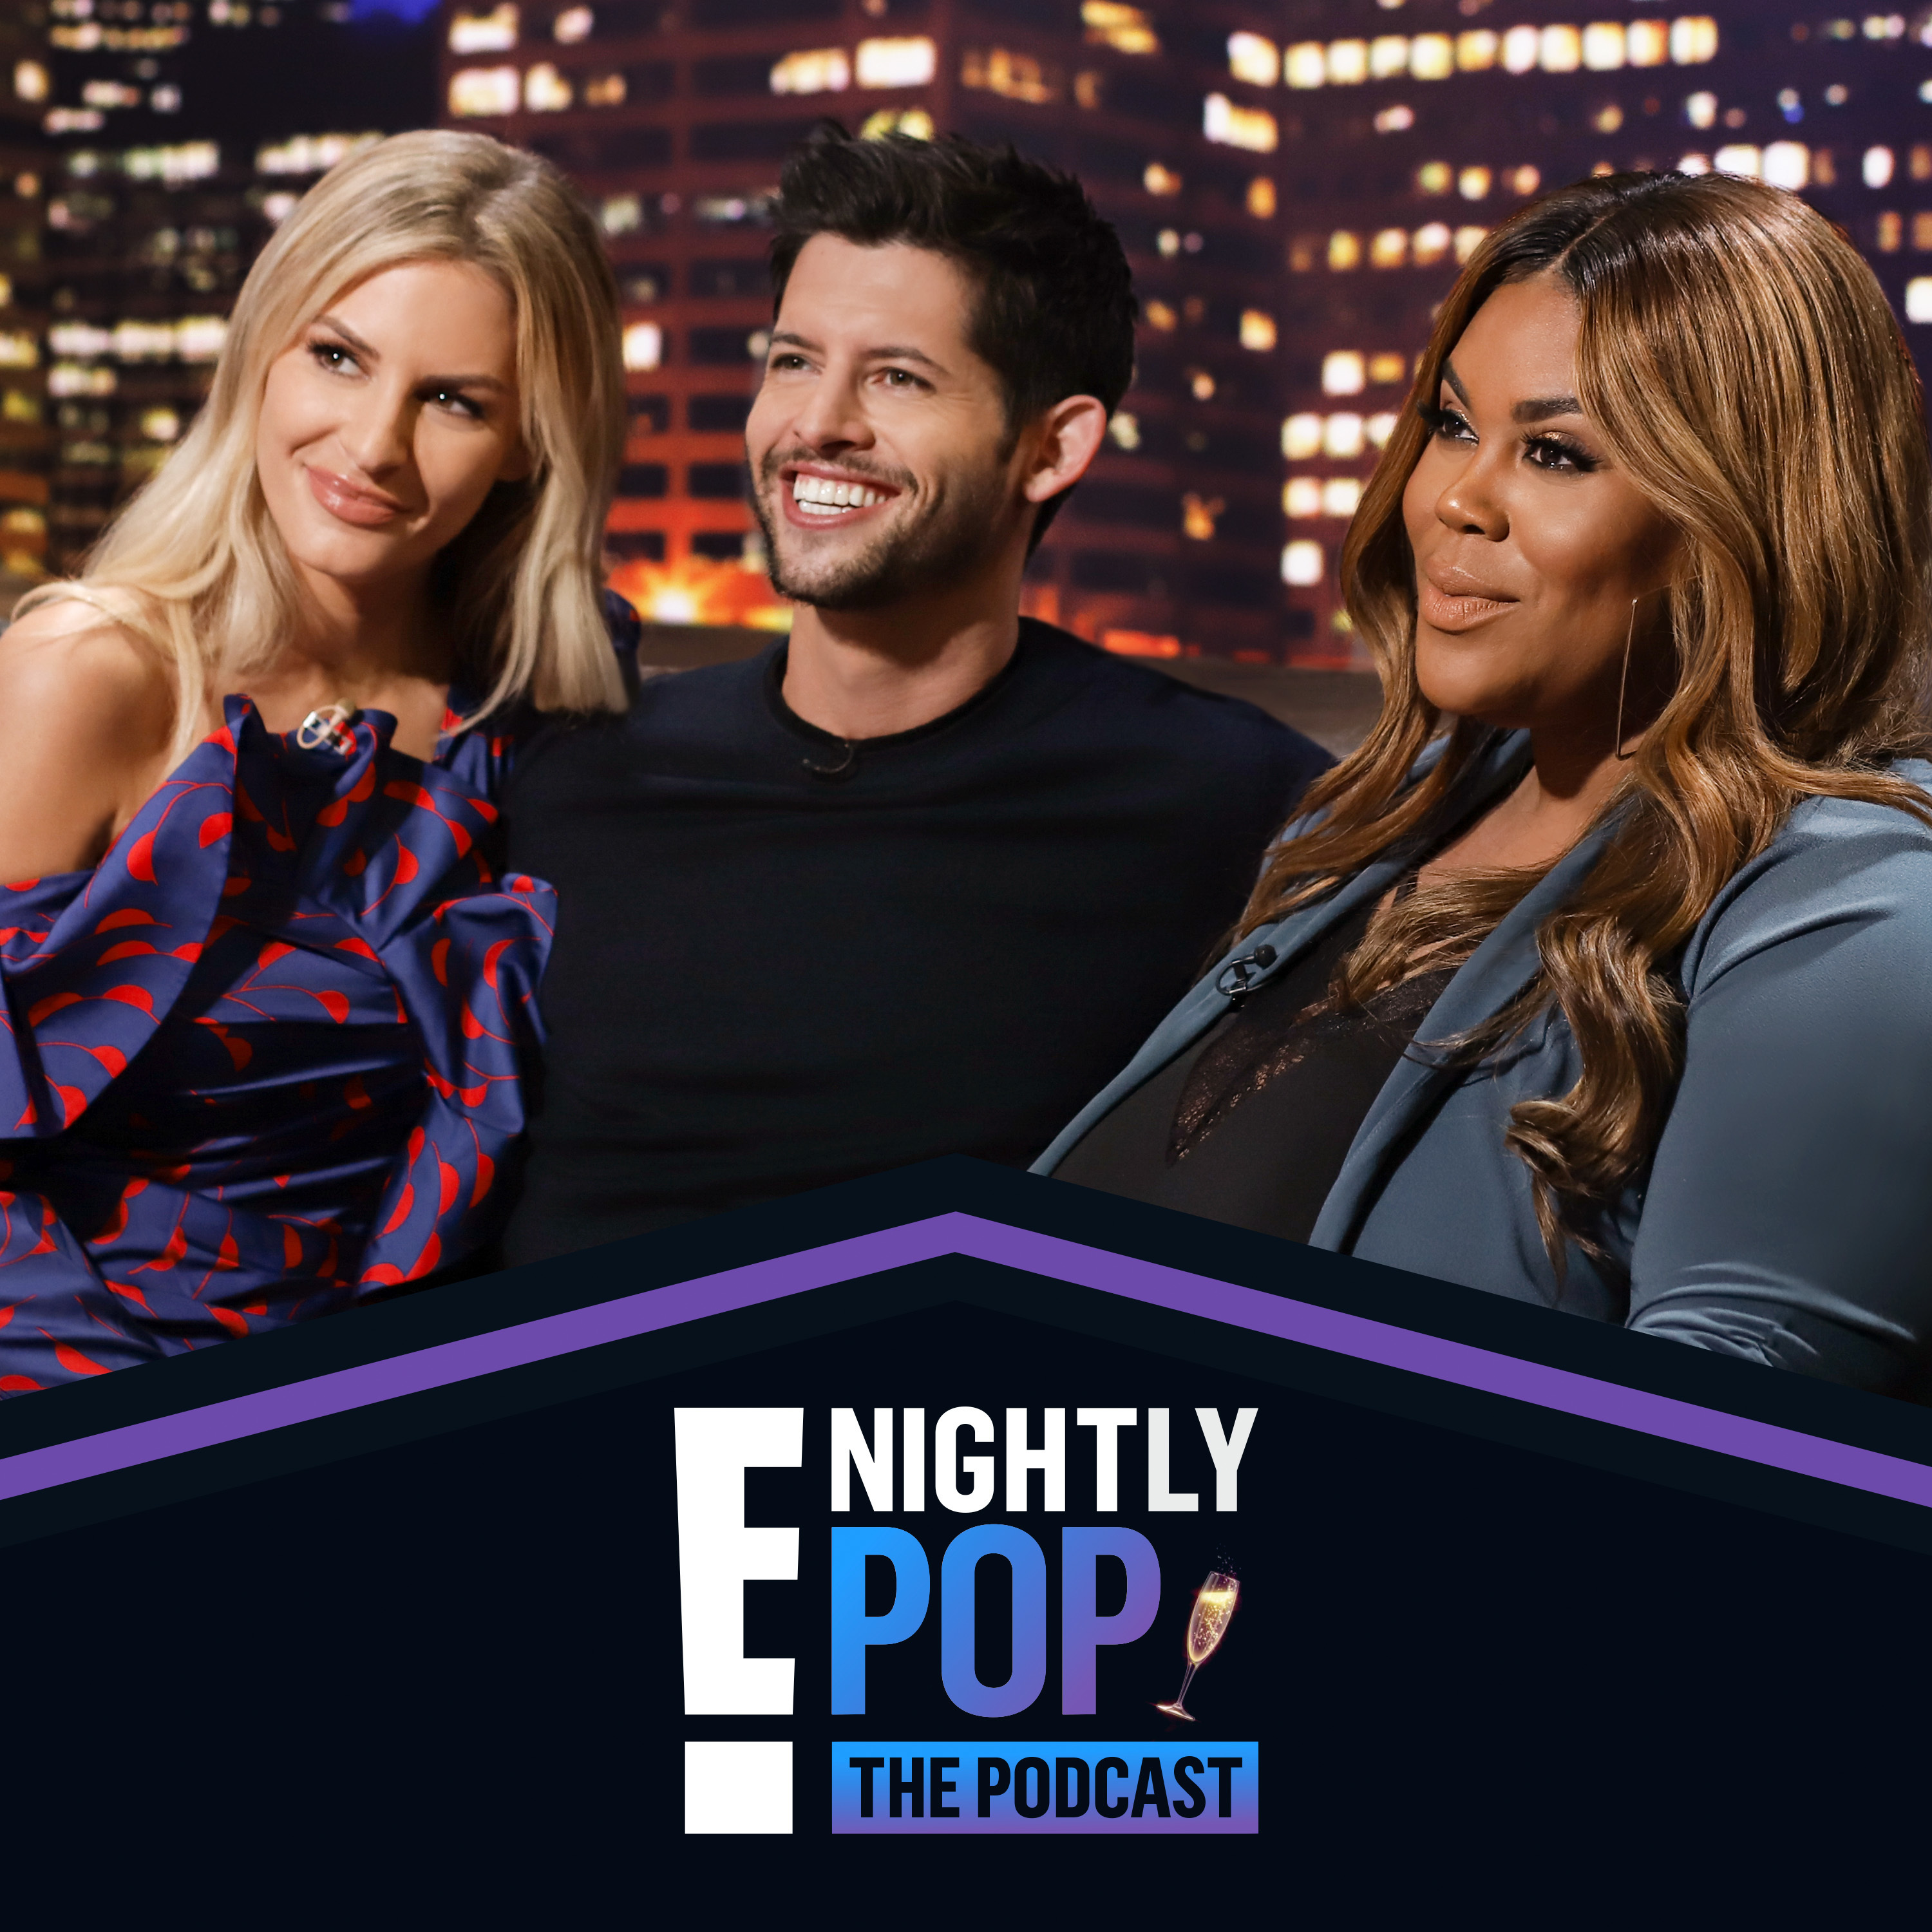 A highlight from Will Smith Talks Entanglement, Kathy Details Love Life & Cardi Visits Wild Side